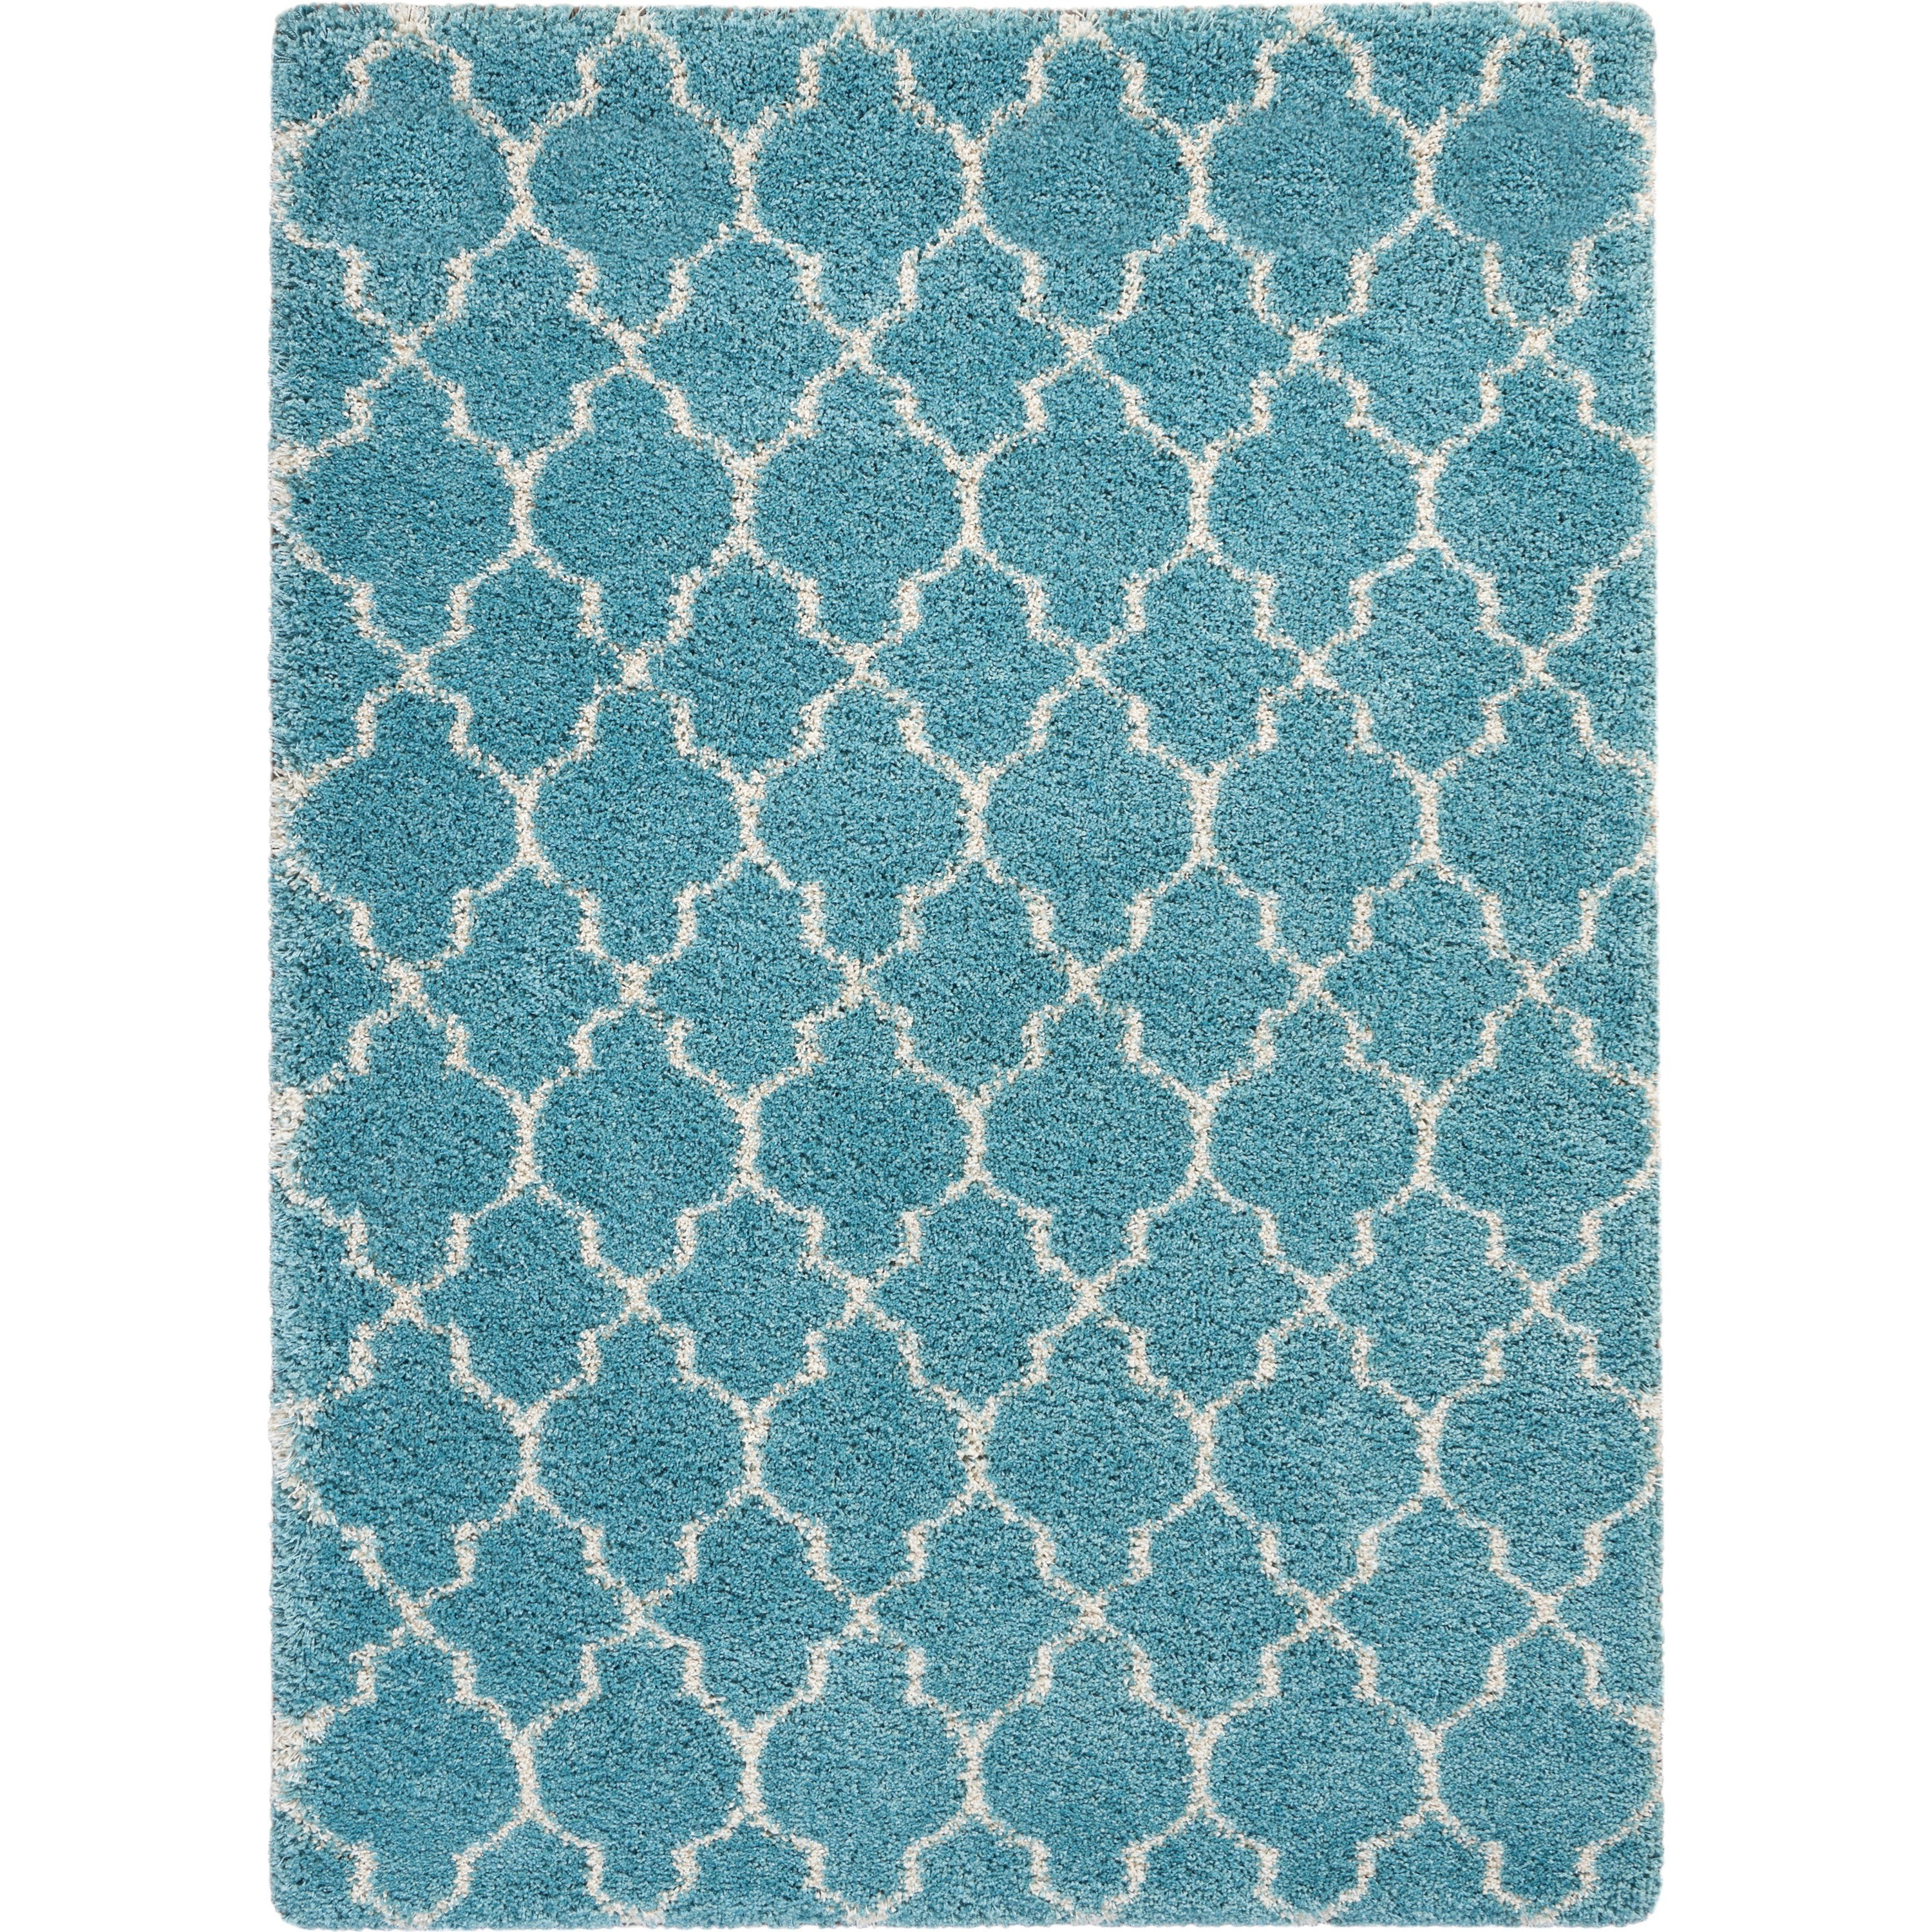 Amore Amore AMOR2 Blue 4'x6' Area Rug by Nourison at Home Collections Furniture